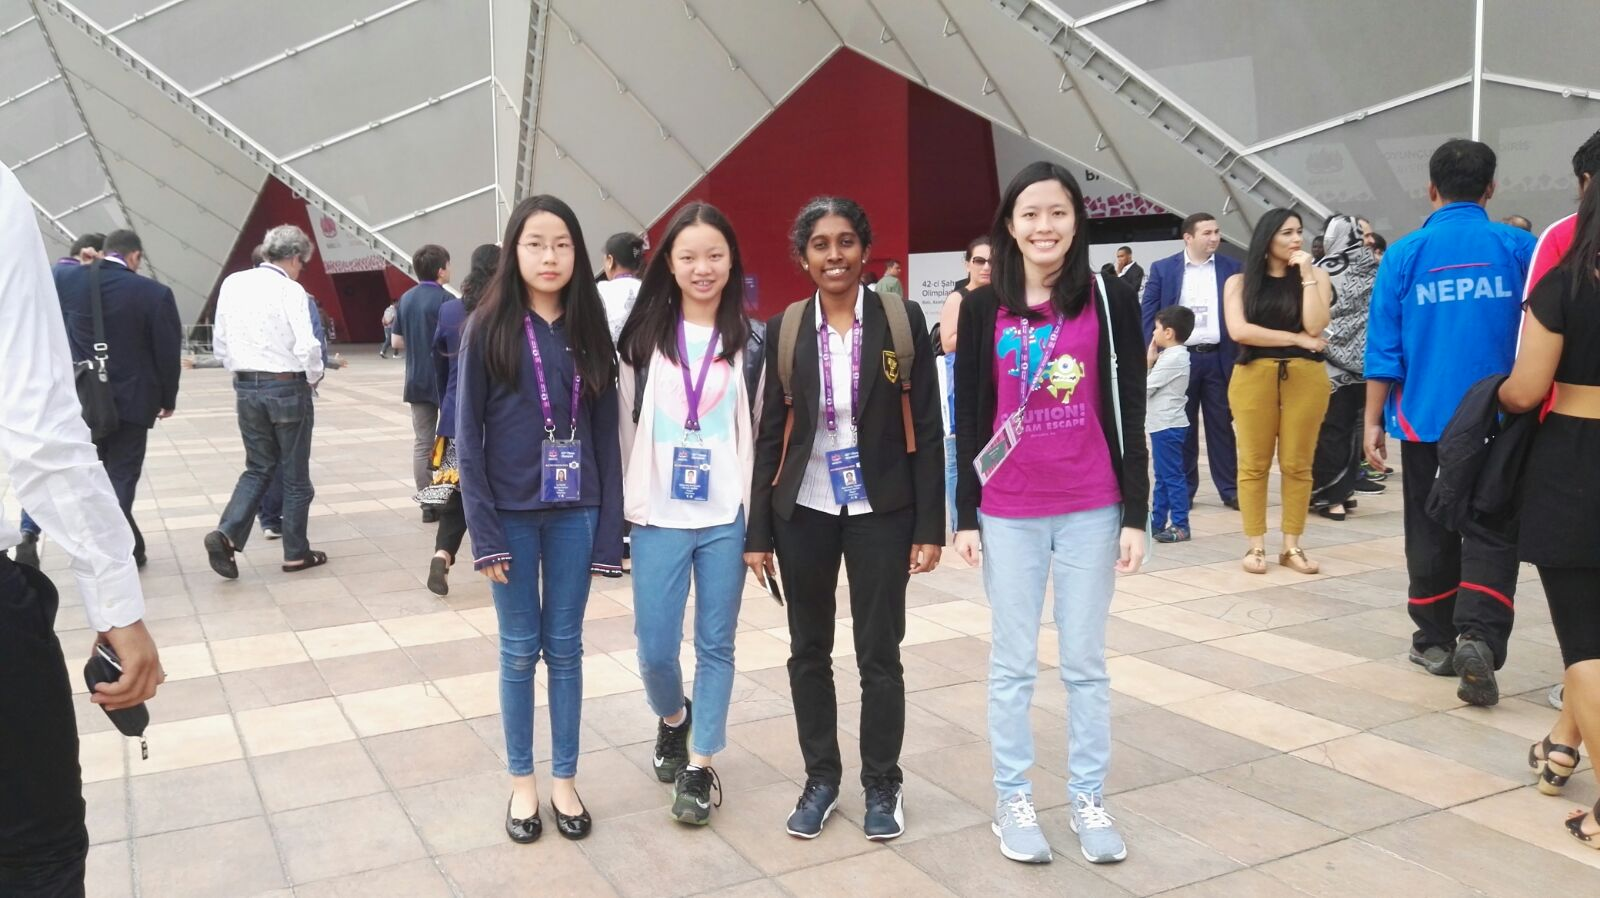 42nd Olympiad – HKG Open & Women